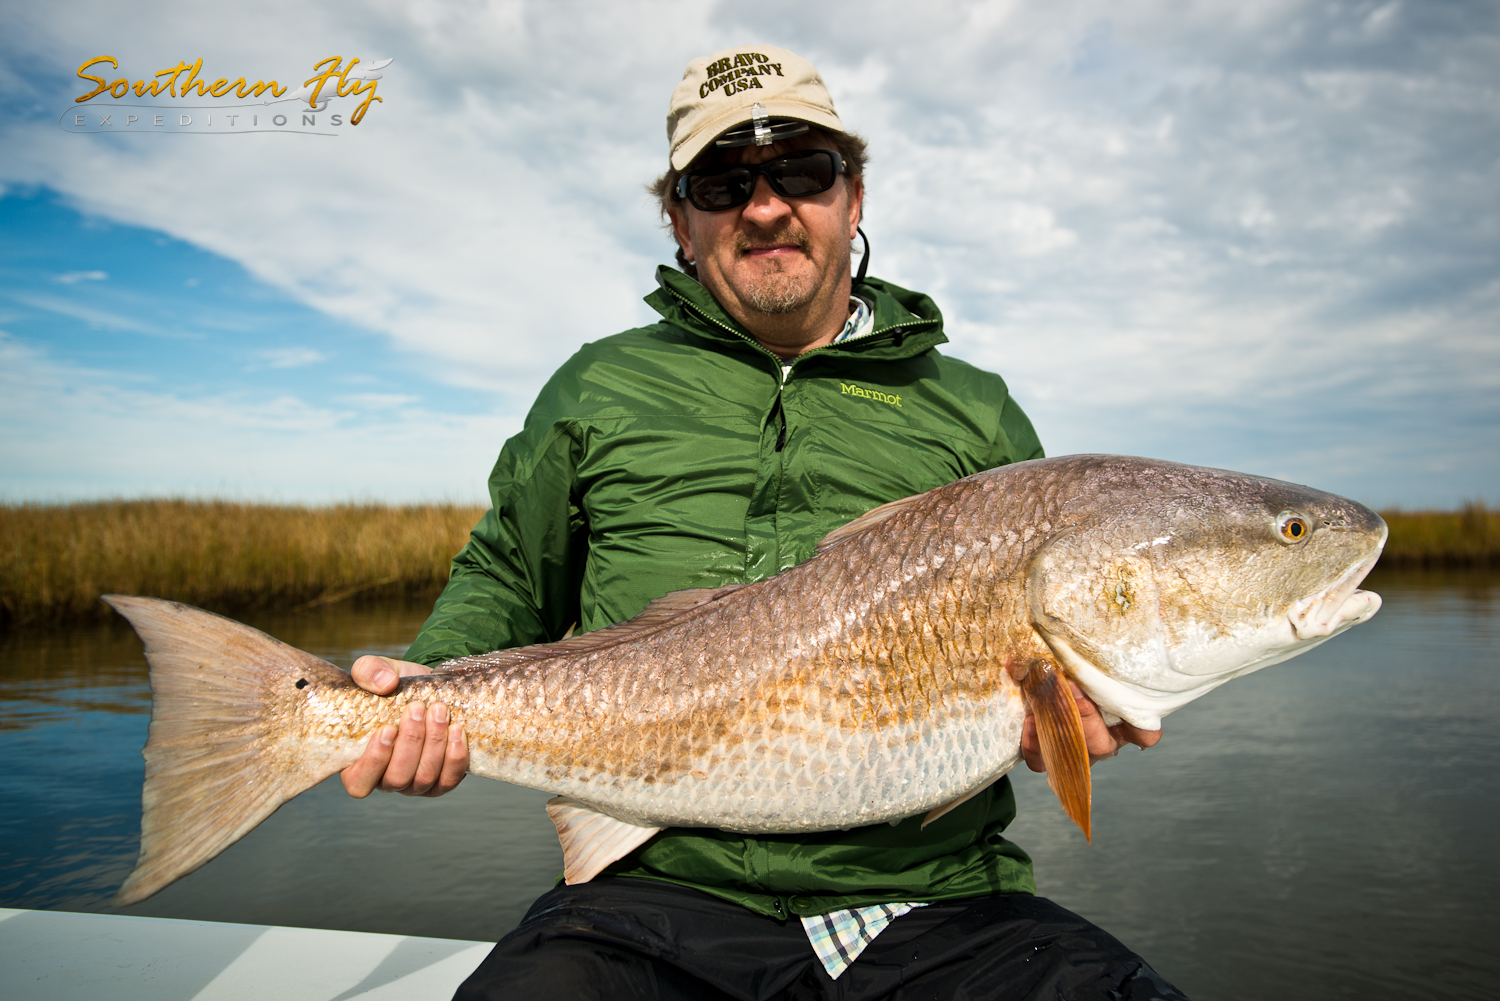 2015-12-16-17-Southern-Fly-Expeditions-BrettBruner-6.jpg